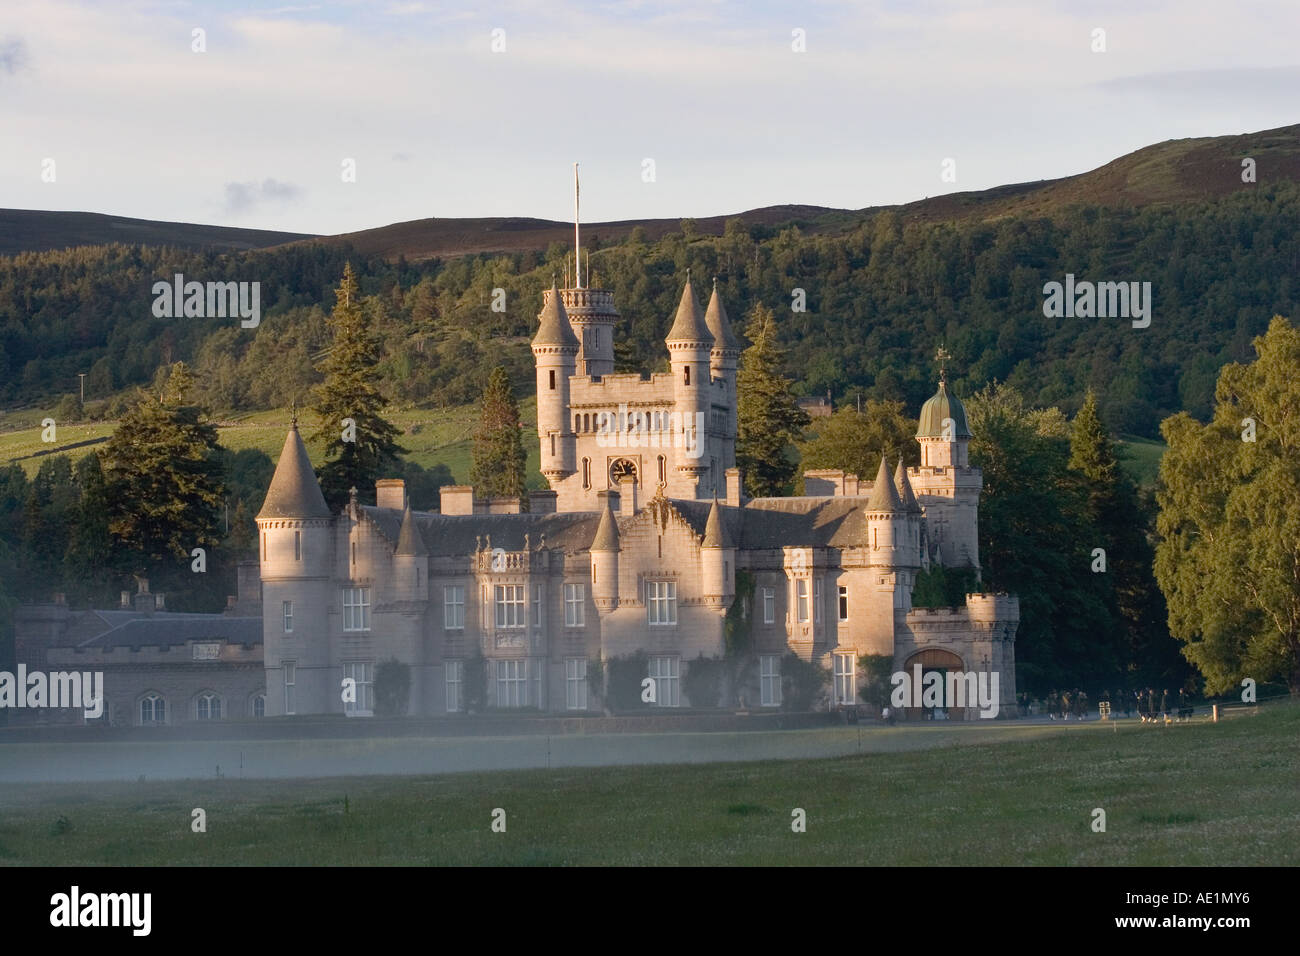 Autumn Haze at Balmoral Scottish castle at Crathie - Royal residences of the British Monarch - Deeside, Scotland, Stock Photo